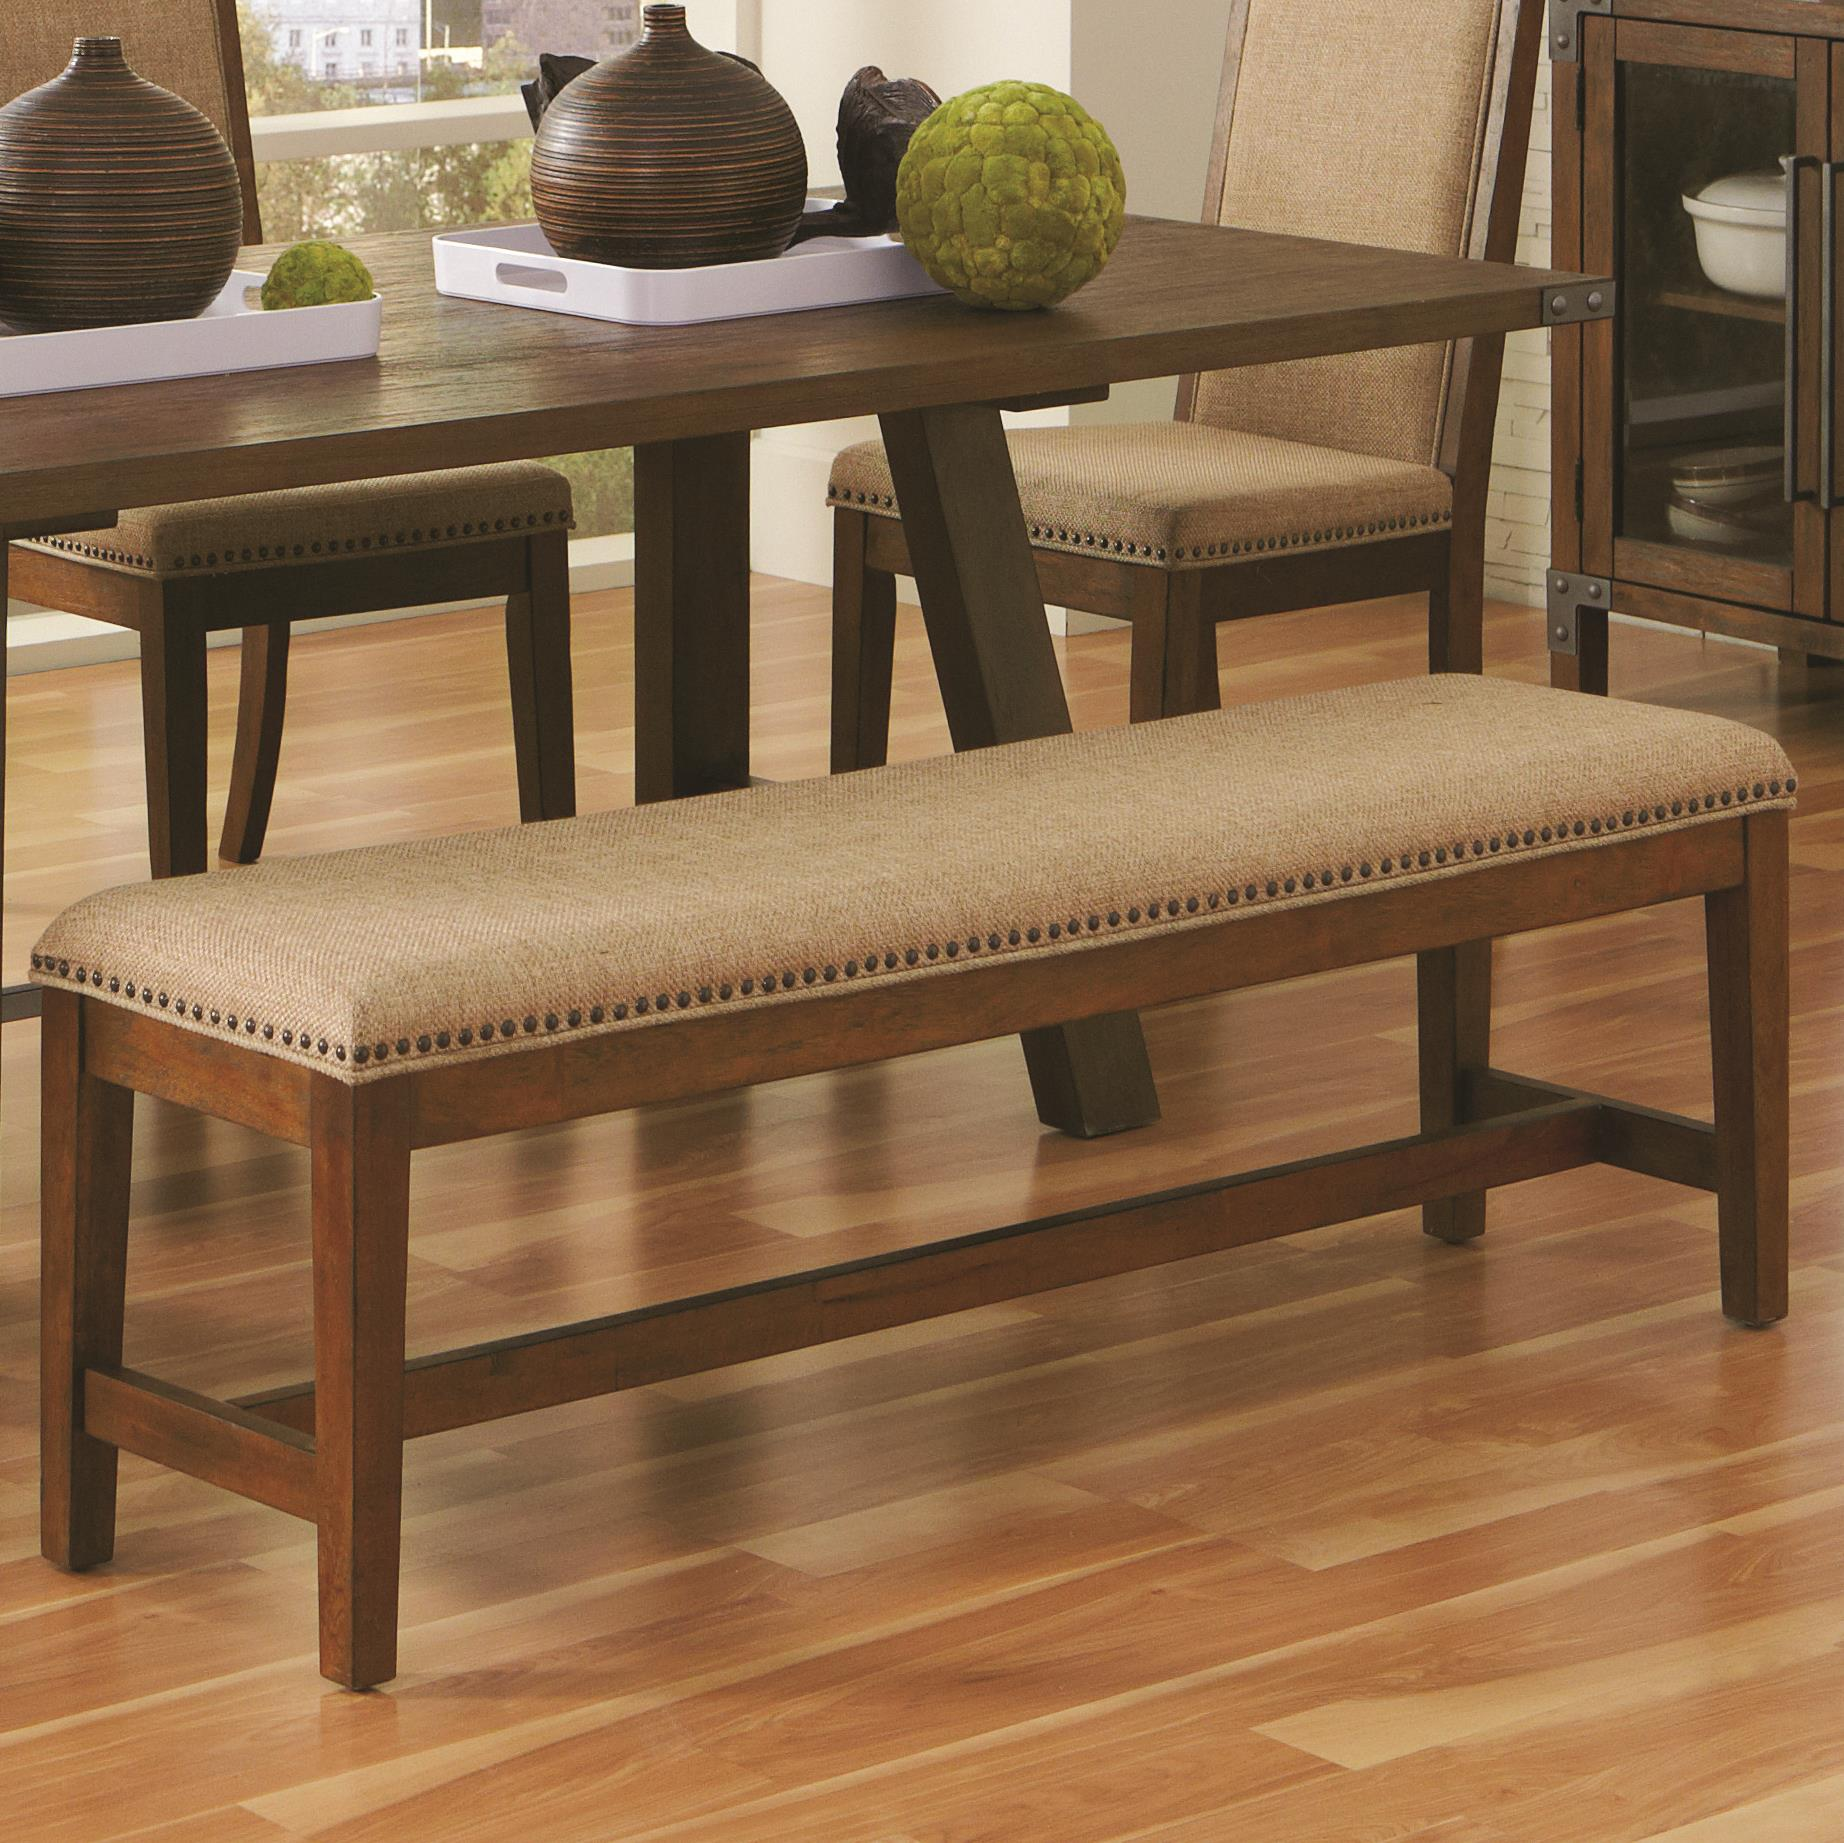 Amazoncom Upholstered  Chairs  Kitchen amp Dining Room